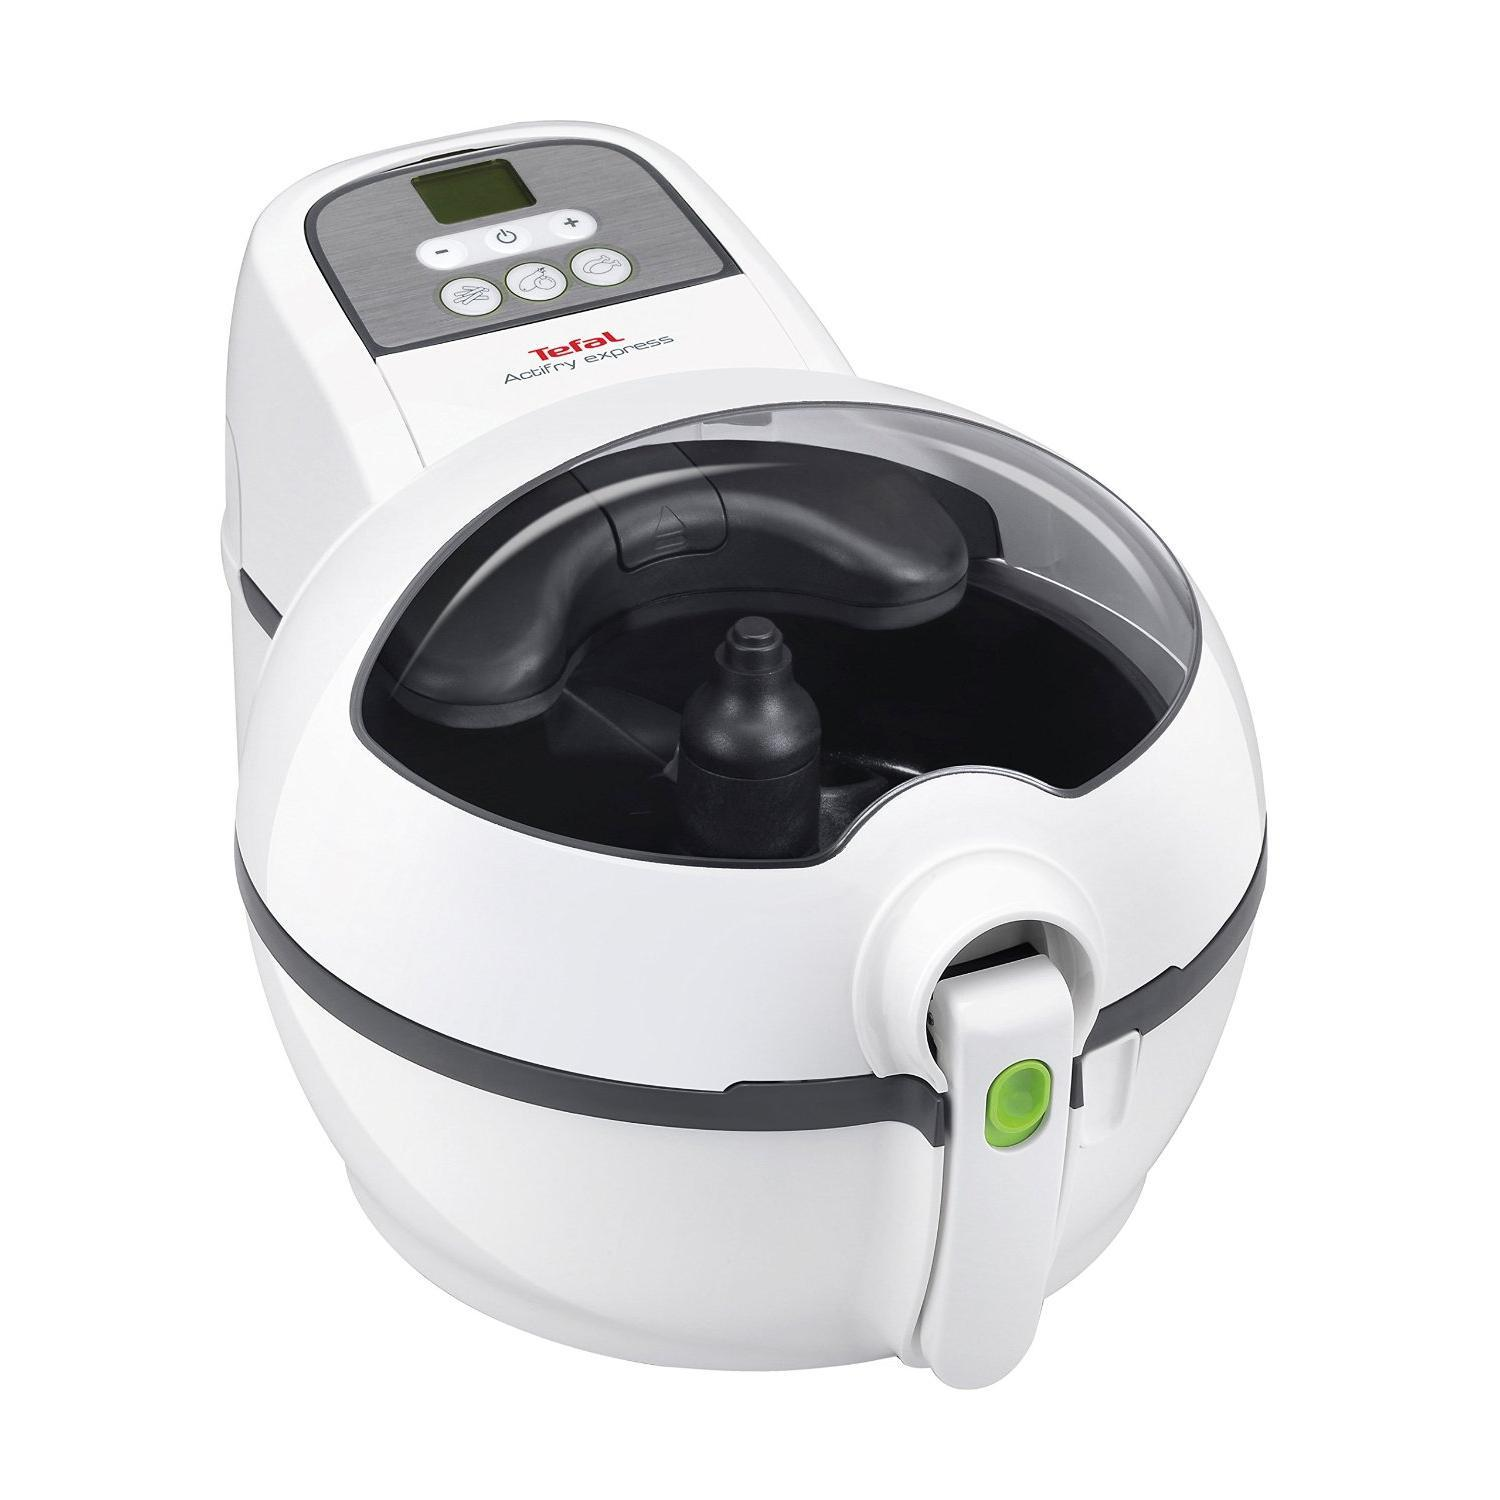 Friteuse Actifry Snacking Tefal FZ7510